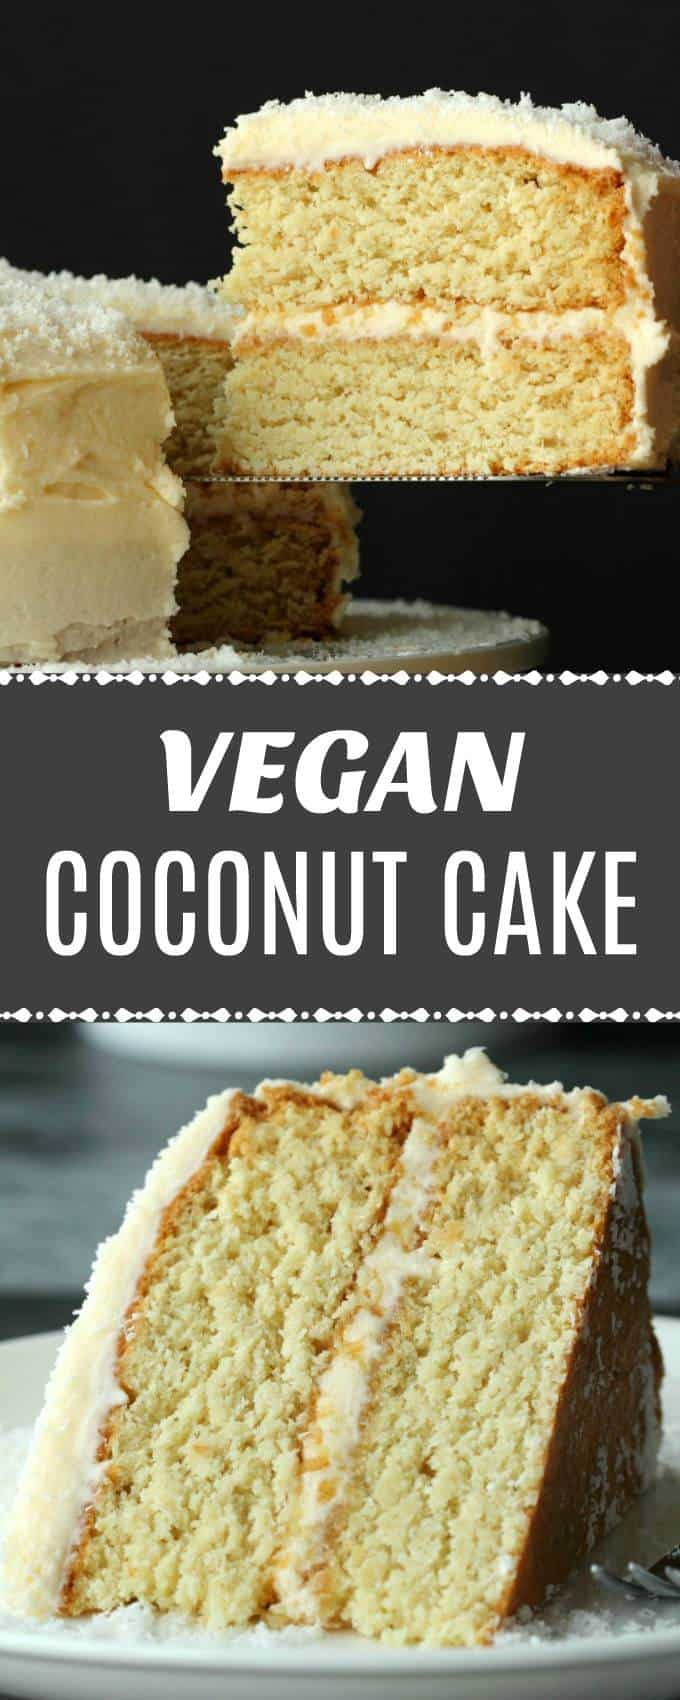 Fabulously coconutty two layered vegan coconut cake topped with a decadent coconut rum frosting. Super easy, moist, fluffy and dense at the same time (I know!) this delicious vegan cake is a total delight to the tastebuds!| lovingitvegan.com